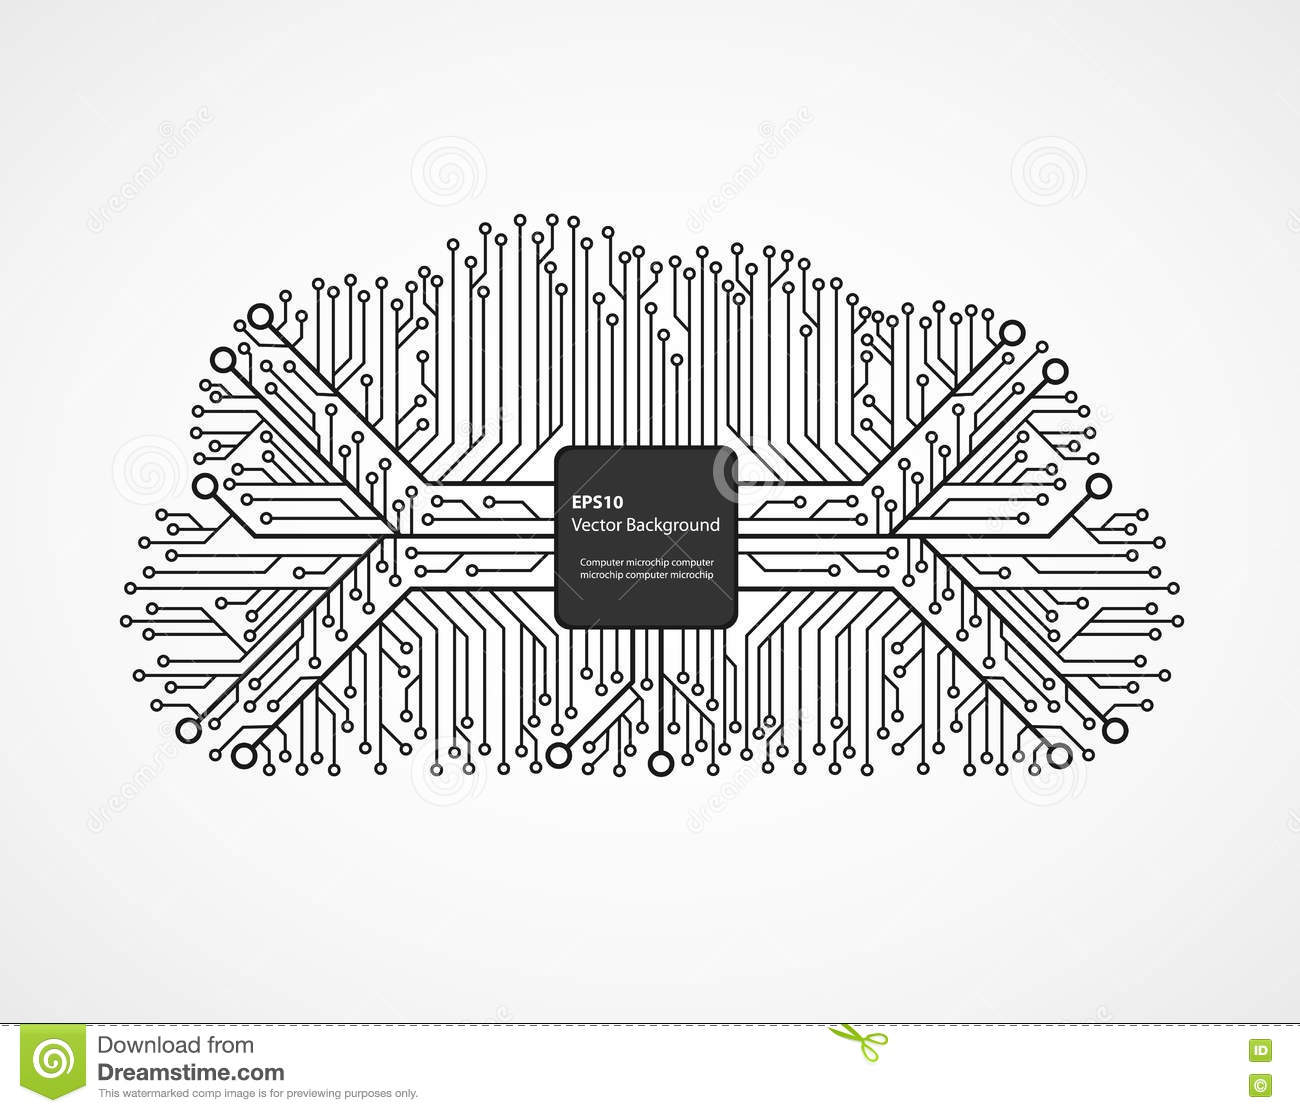 cloud computing technology in an electronic circuit chip design rh dreamstime com